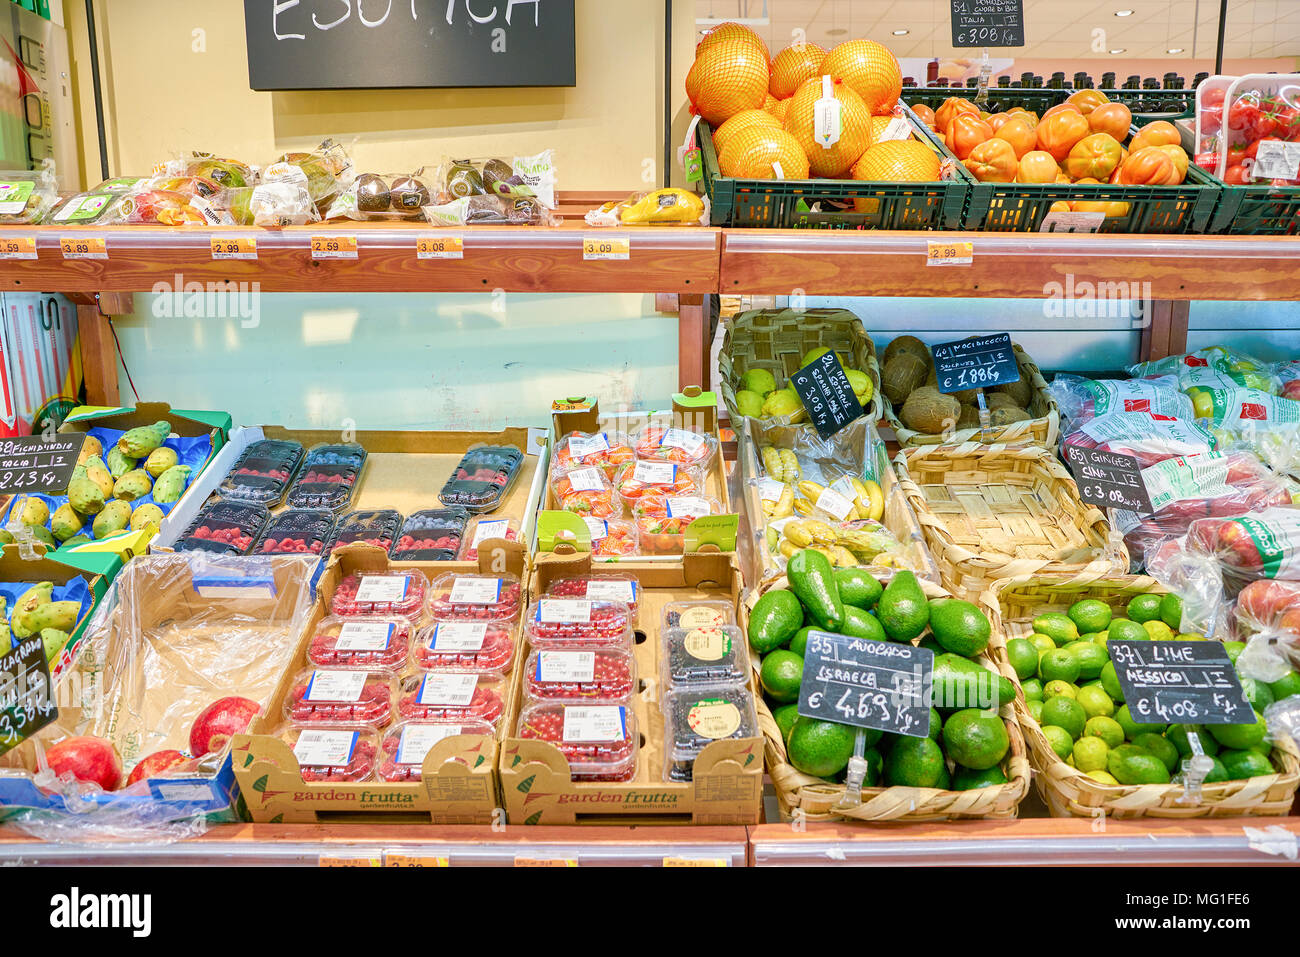 Health Food Store Shellharbour